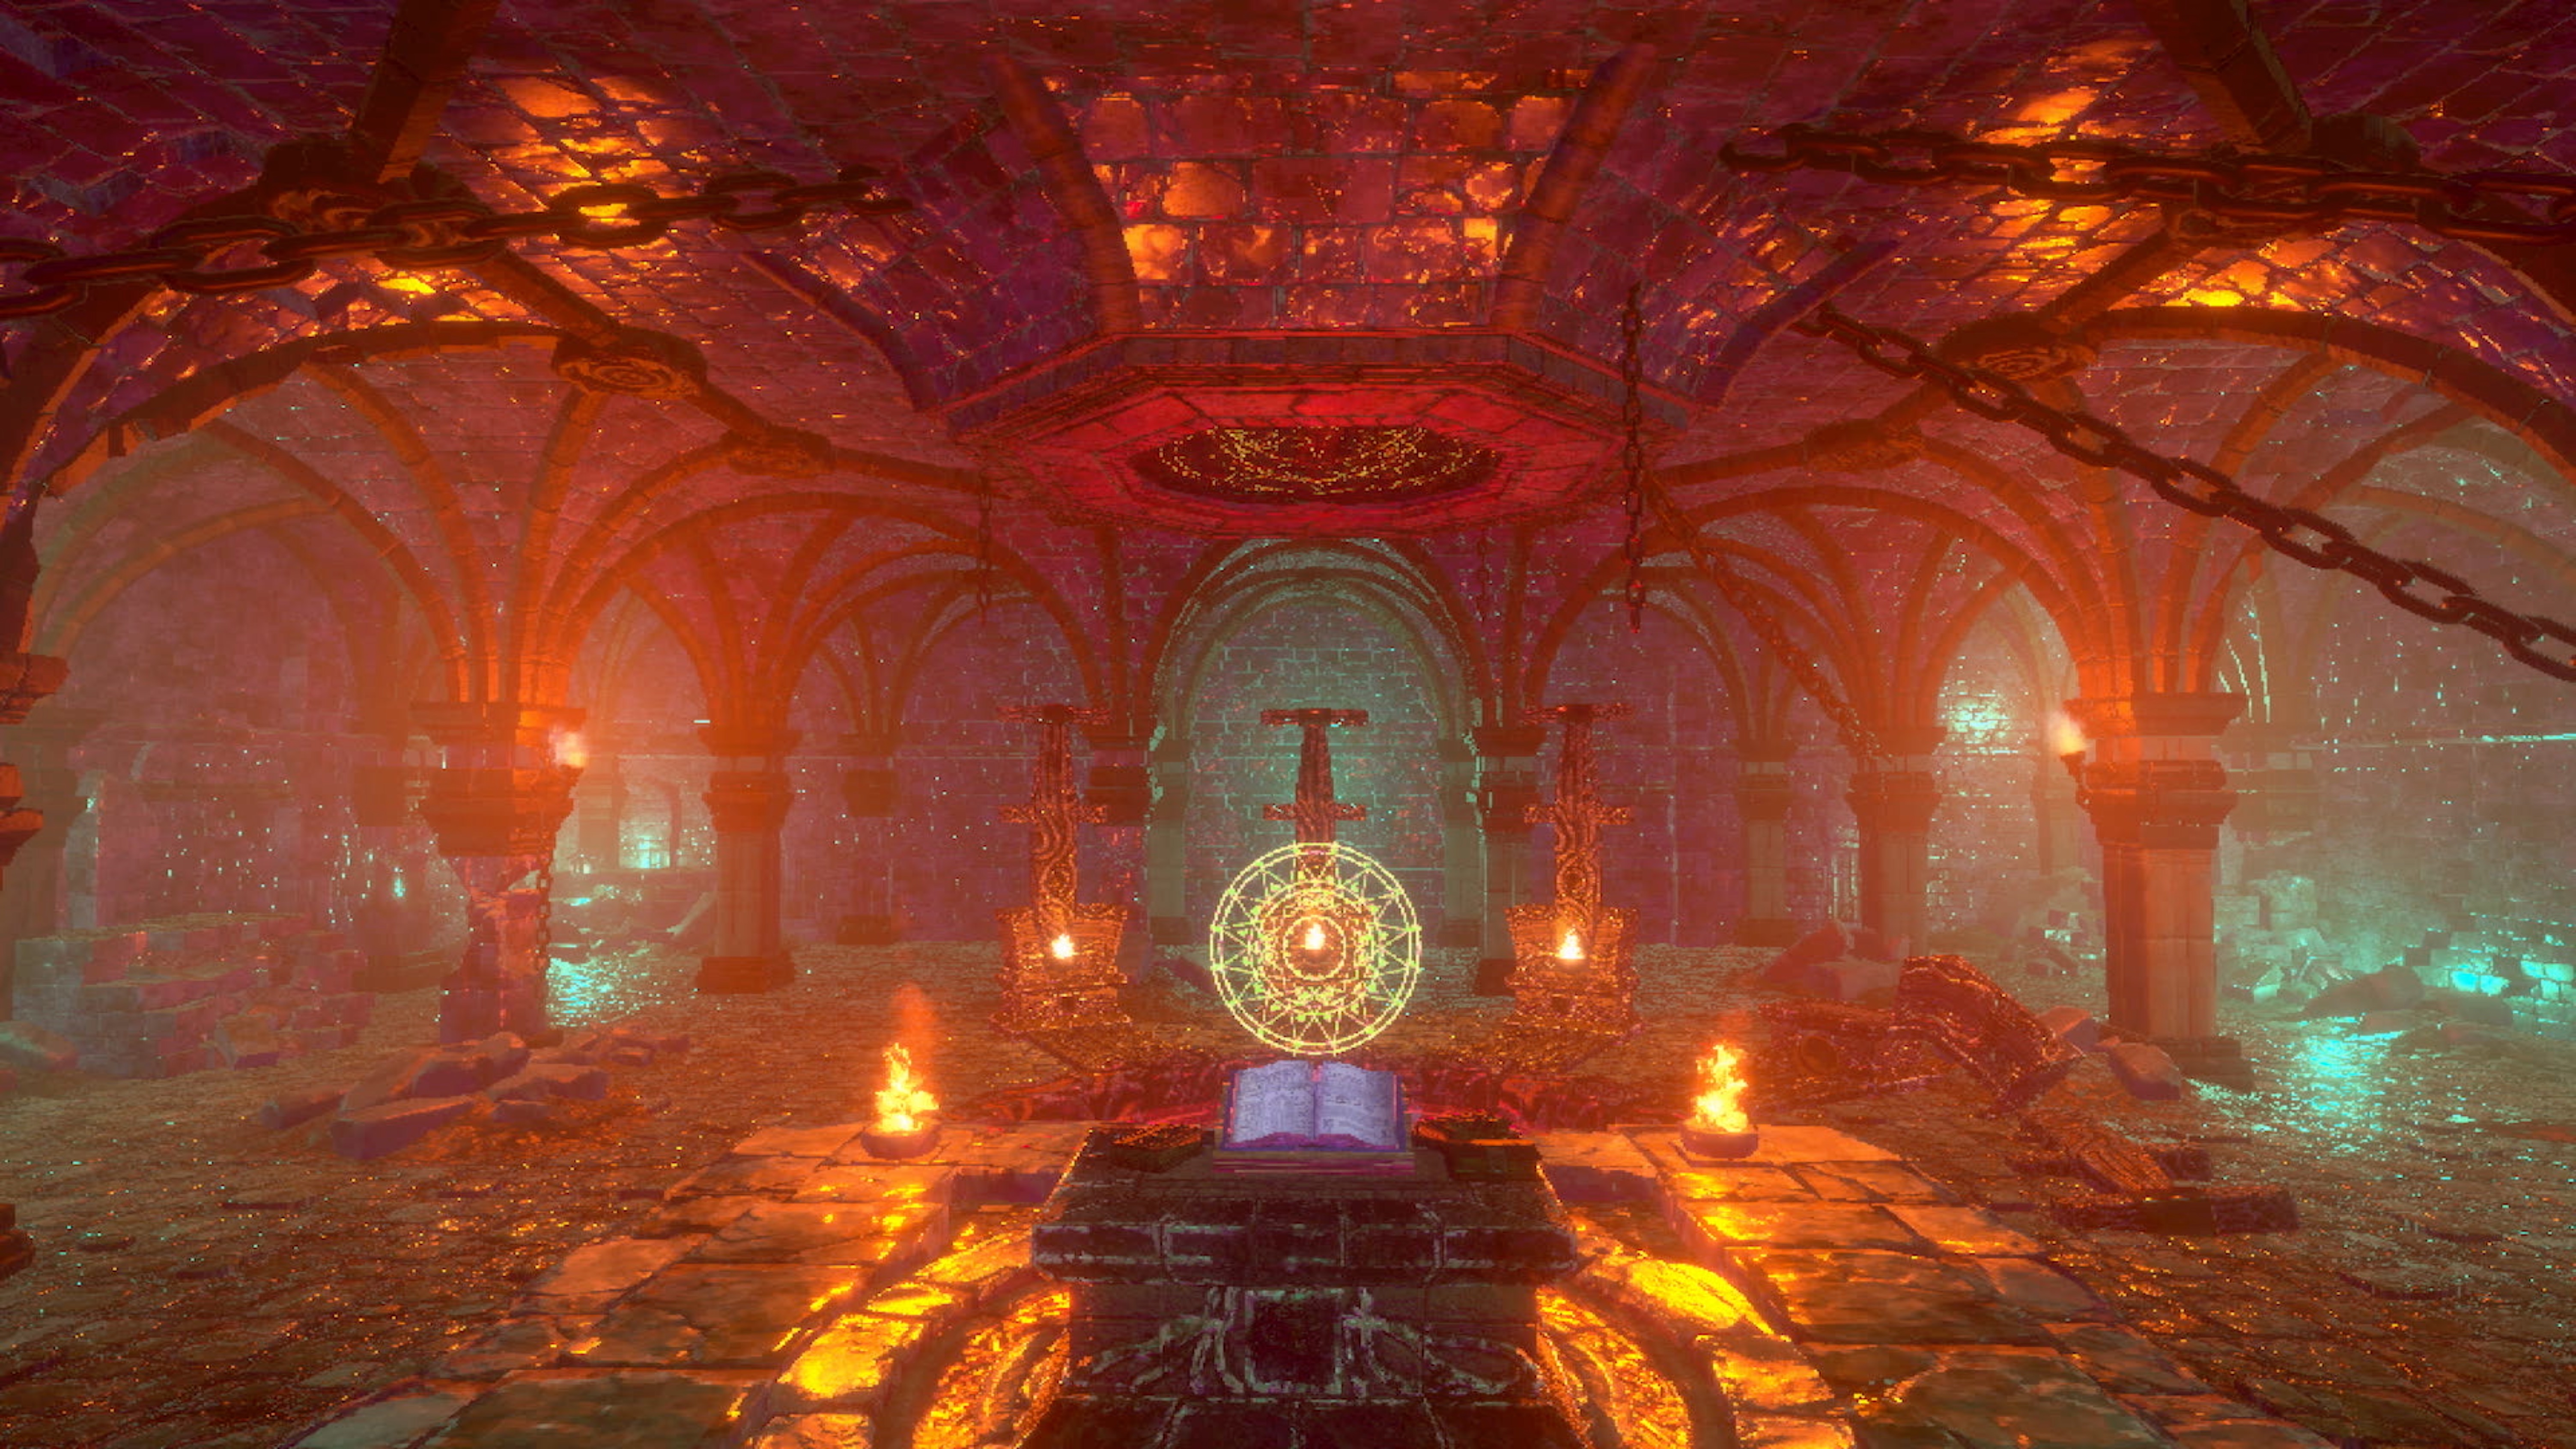 Into the Pit - a caster approaches a demonic ritual altar in the pits of hell